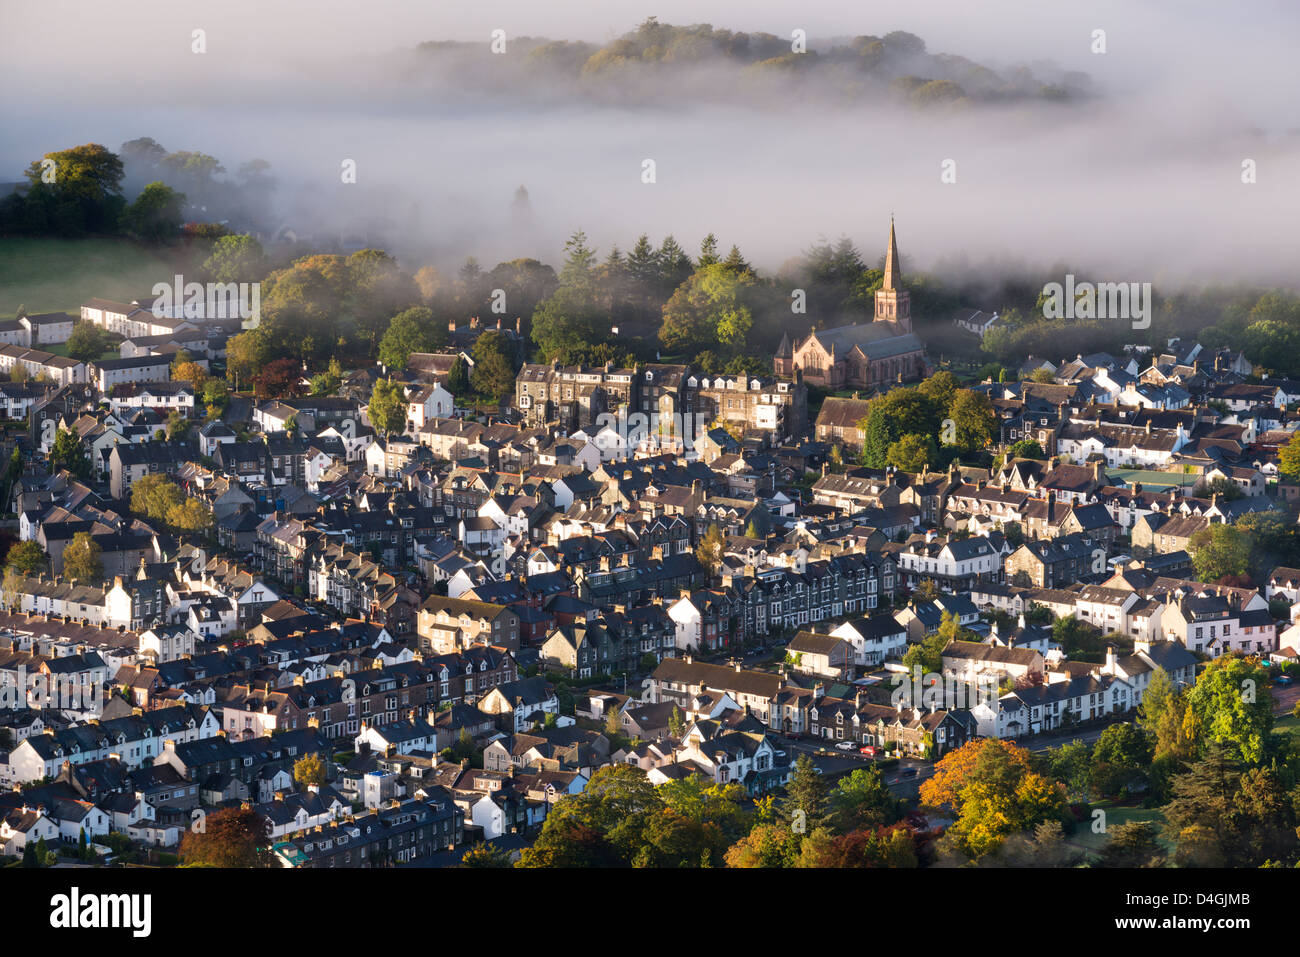 Aerial view of Keswick in the Lake District National Park, Cumbria, England. Autumn (October) 2012. - Stock Image